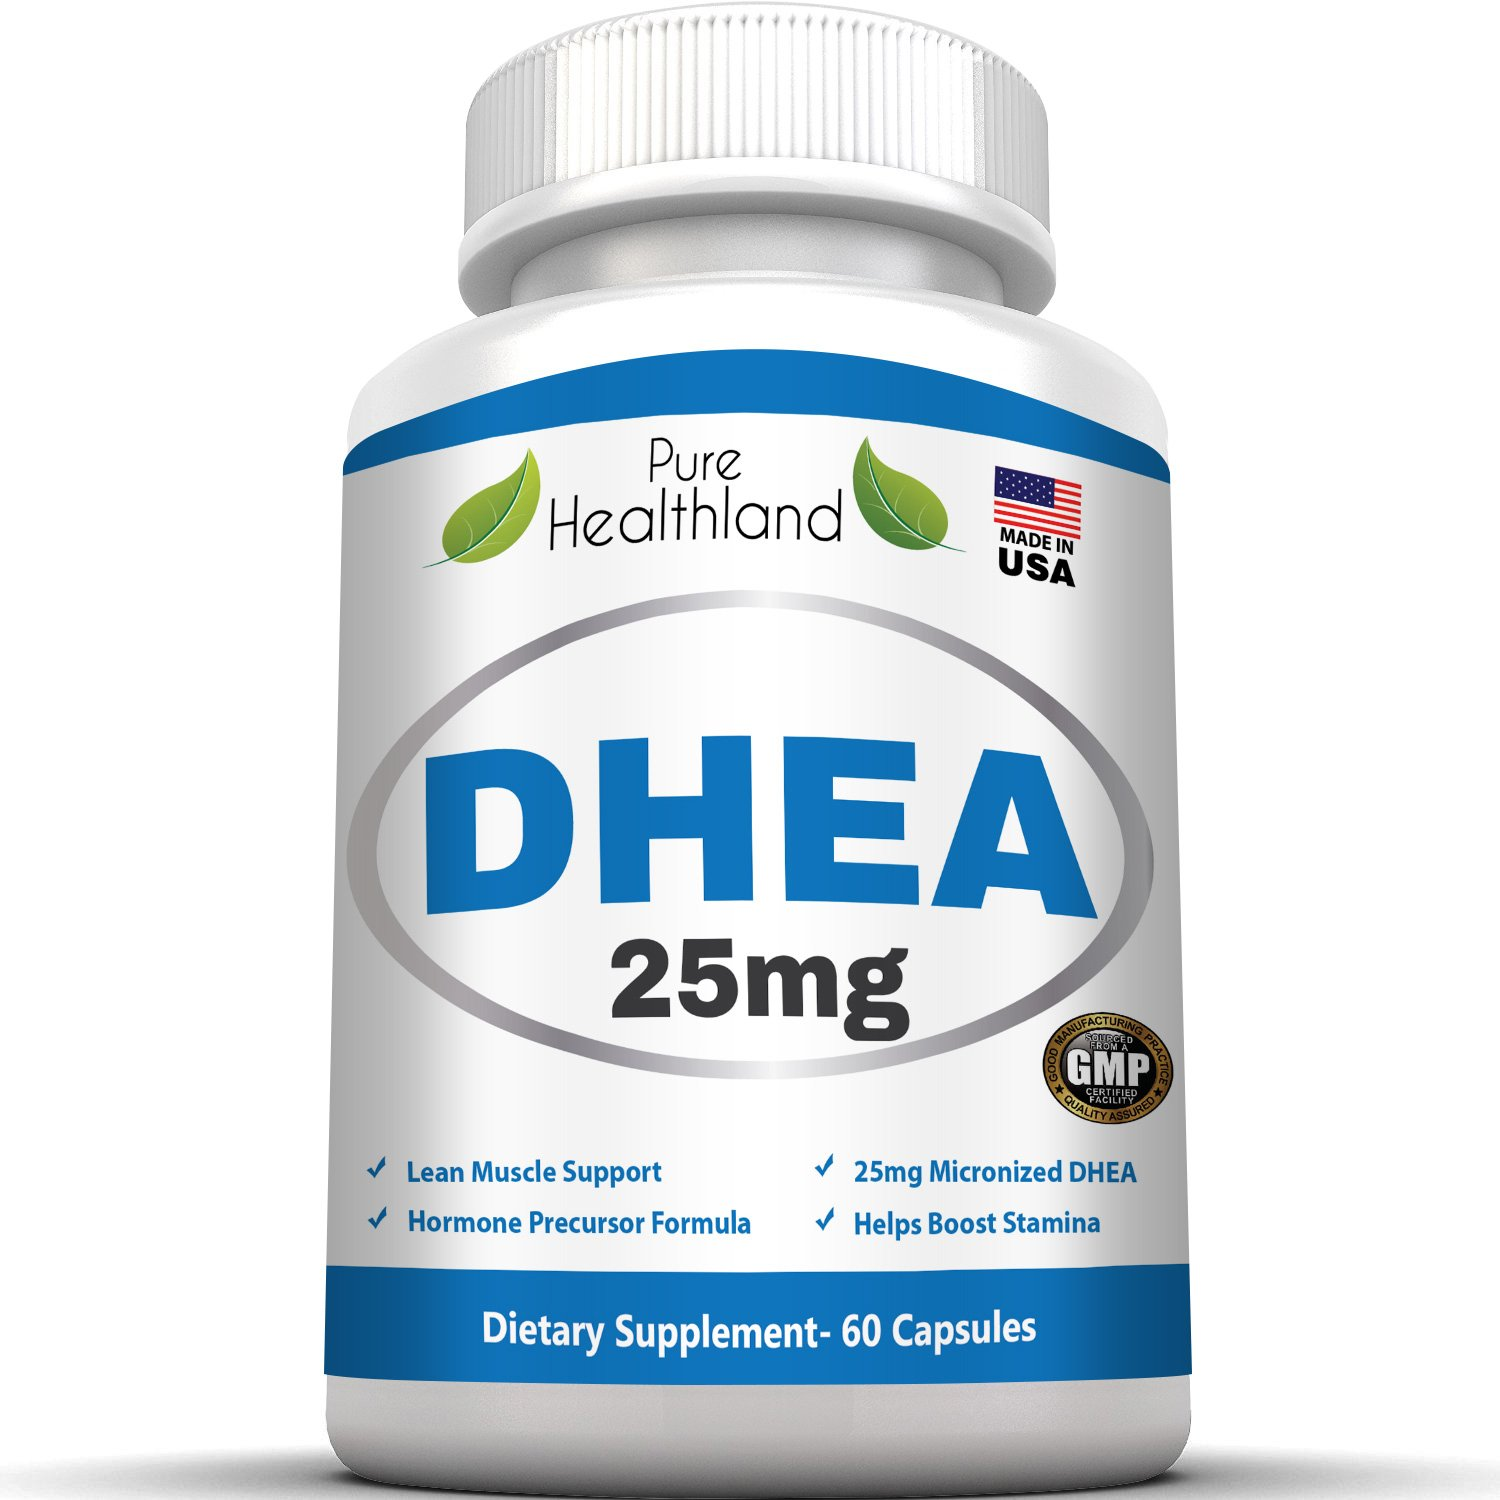 DHEA Supplement Capsules 25mg for Men and Women. Ultimate Nutrition to Balance Hormones, Support Anti-Aging, Increase Energy, Improve Mood, Boost Libido for Males and Females, Protect Immune System